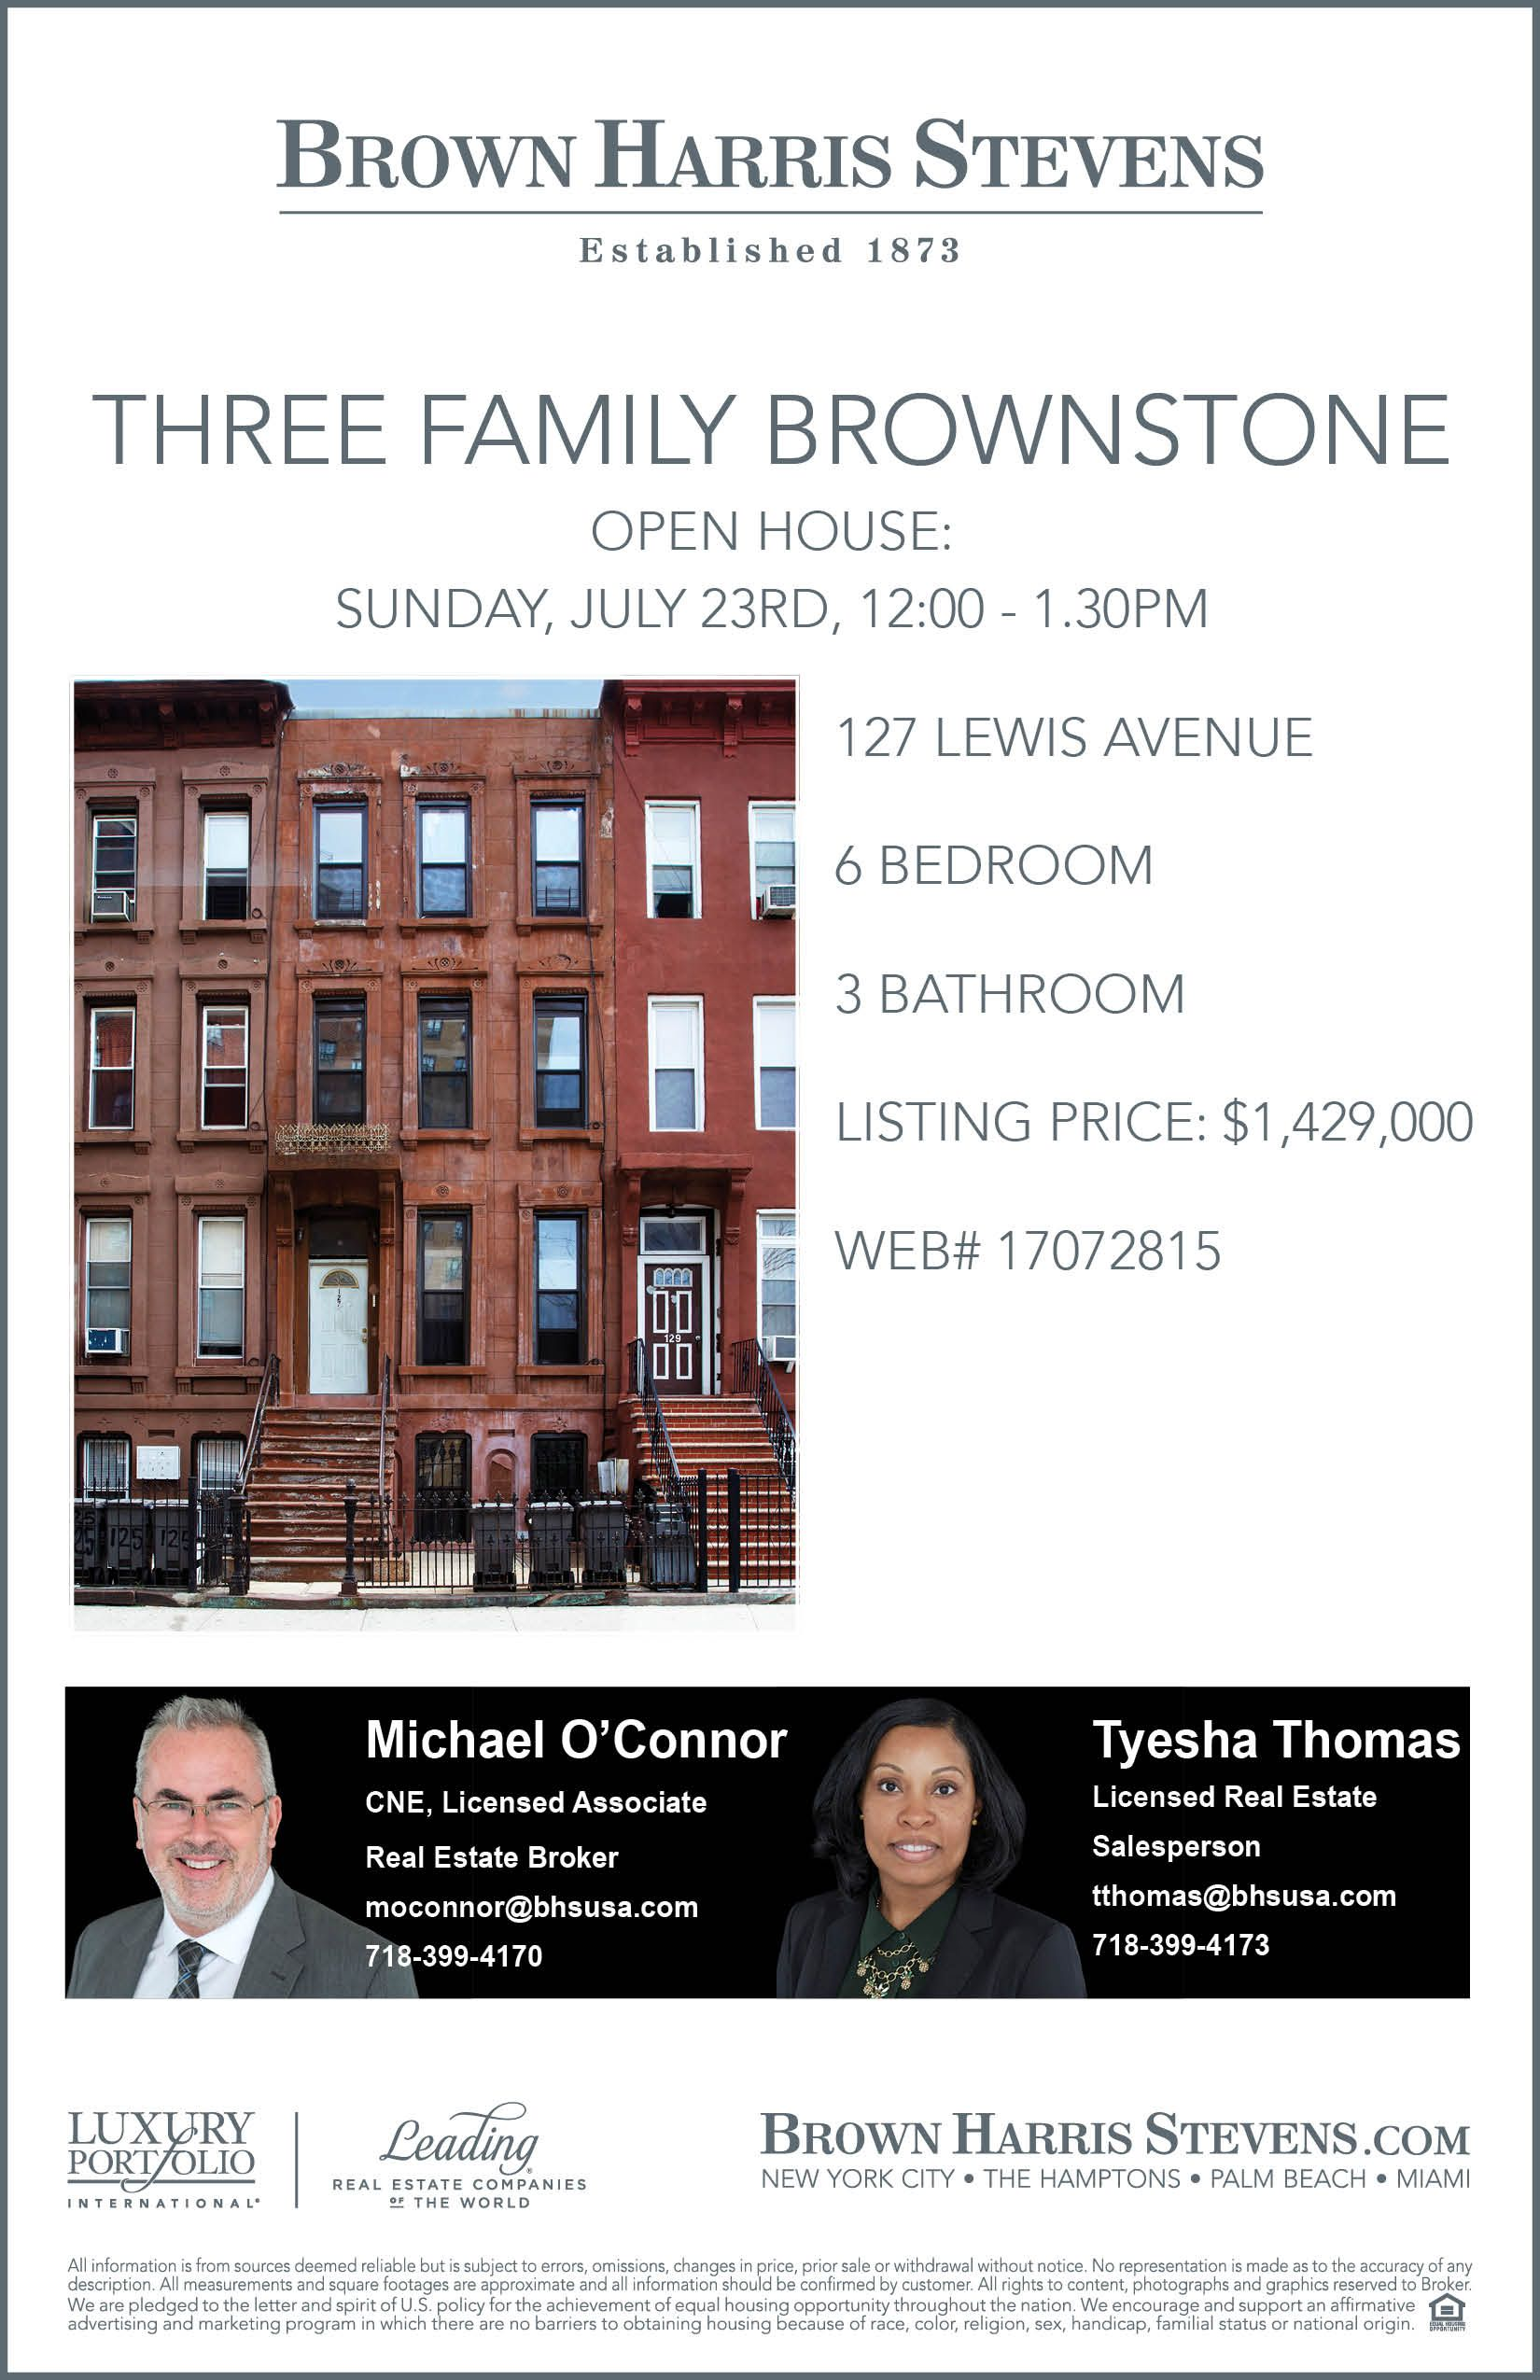 Open House this Sunday, July 23rd noon 1.30pm. Open